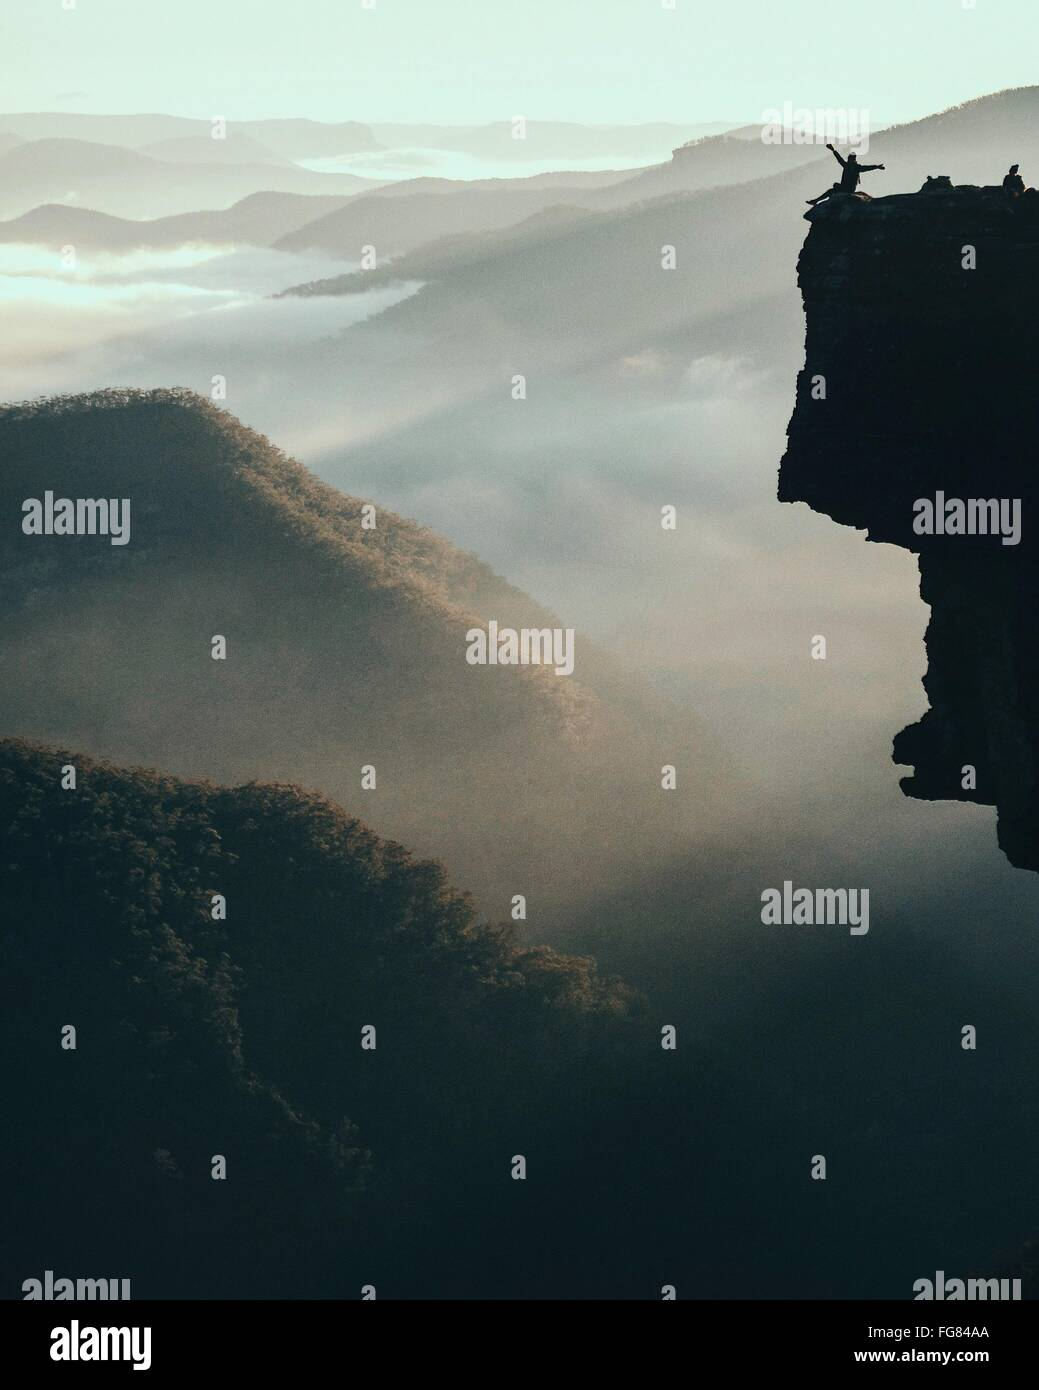 Scenic View Of Mountains During Foggy Weather - Stock Image